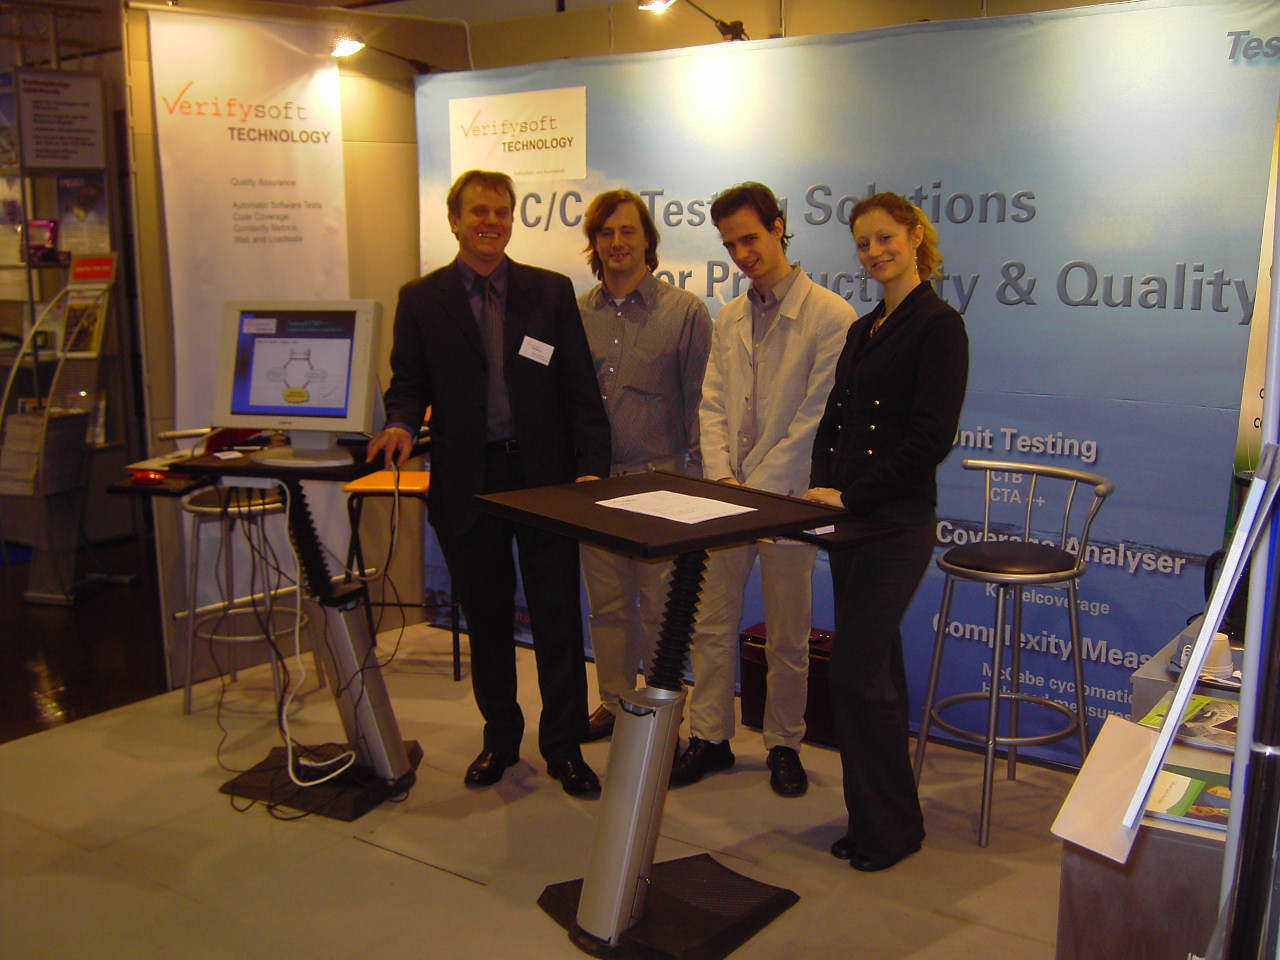 Verifysoft: Embedded World 2005